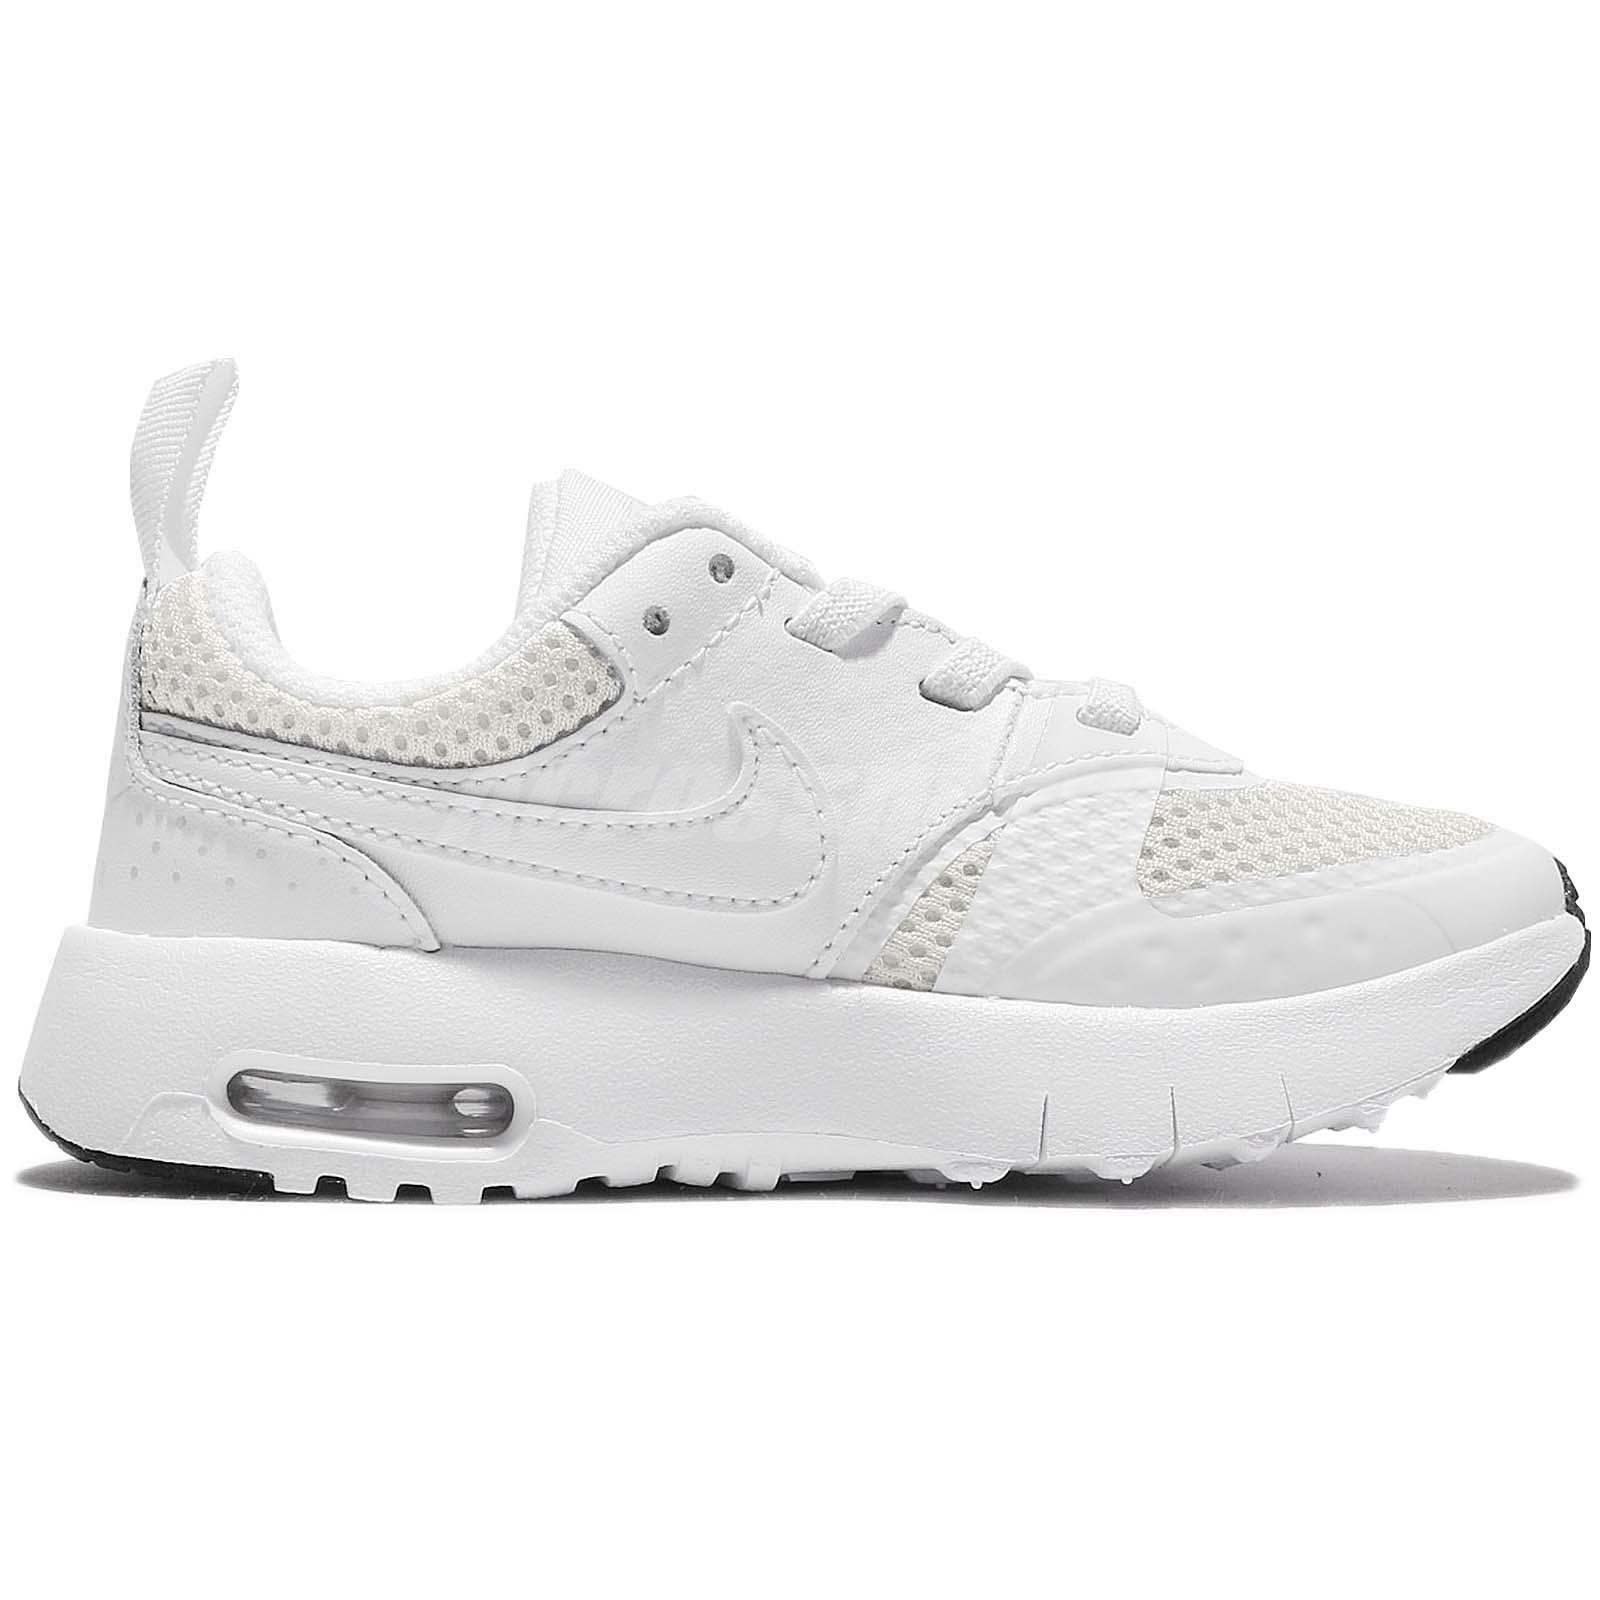 Nike Air Max Vision TDE White Toddler Infant Baby Running Shoes